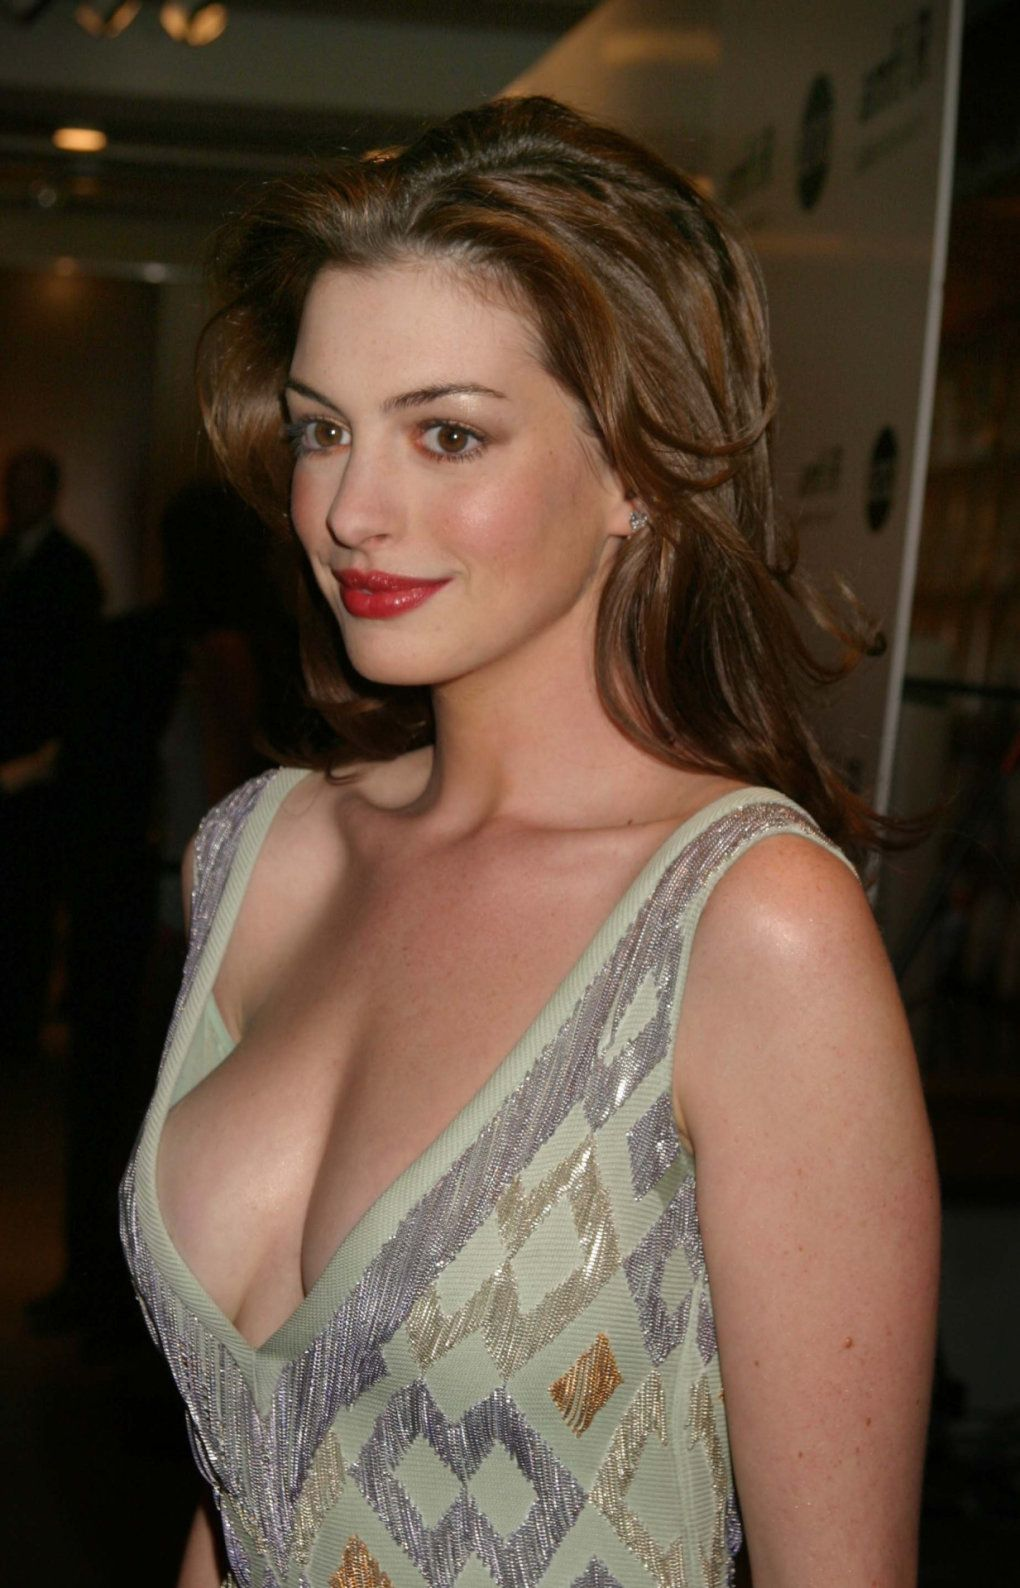 Young Anne Hathaway nudes (12 foto and video), Sexy, Fappening, Twitter, legs 2015